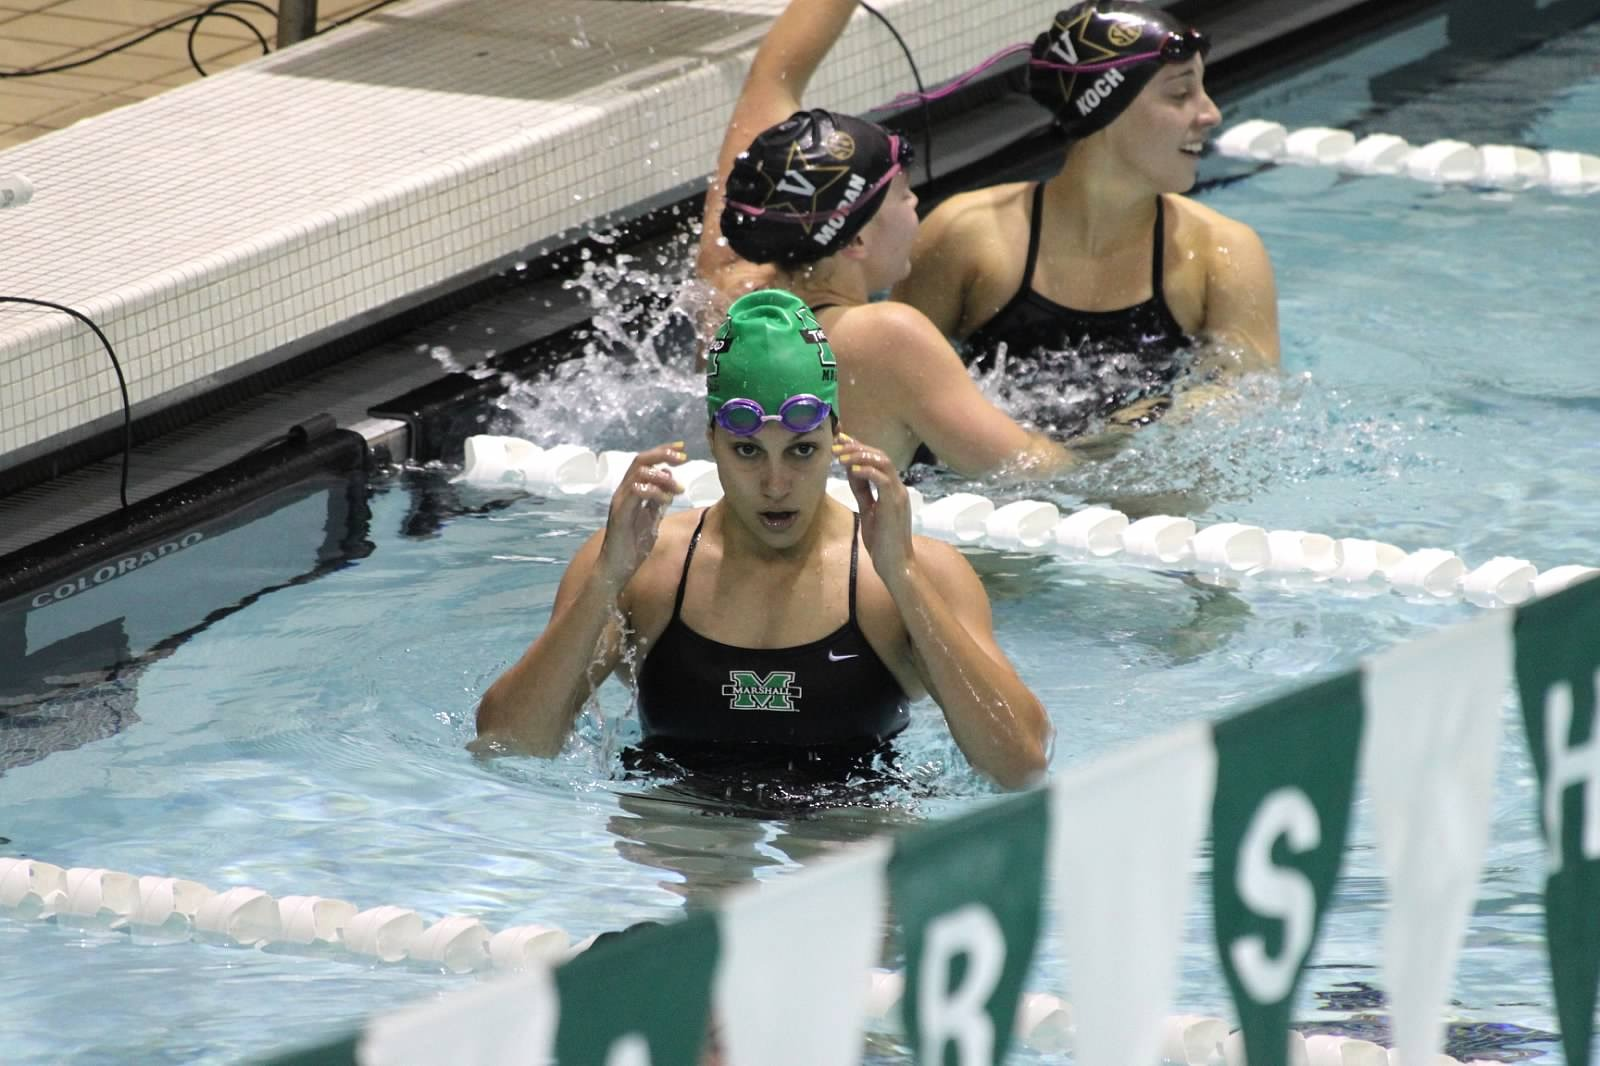 Mavrova reset the pool record in the 50 freestyle.